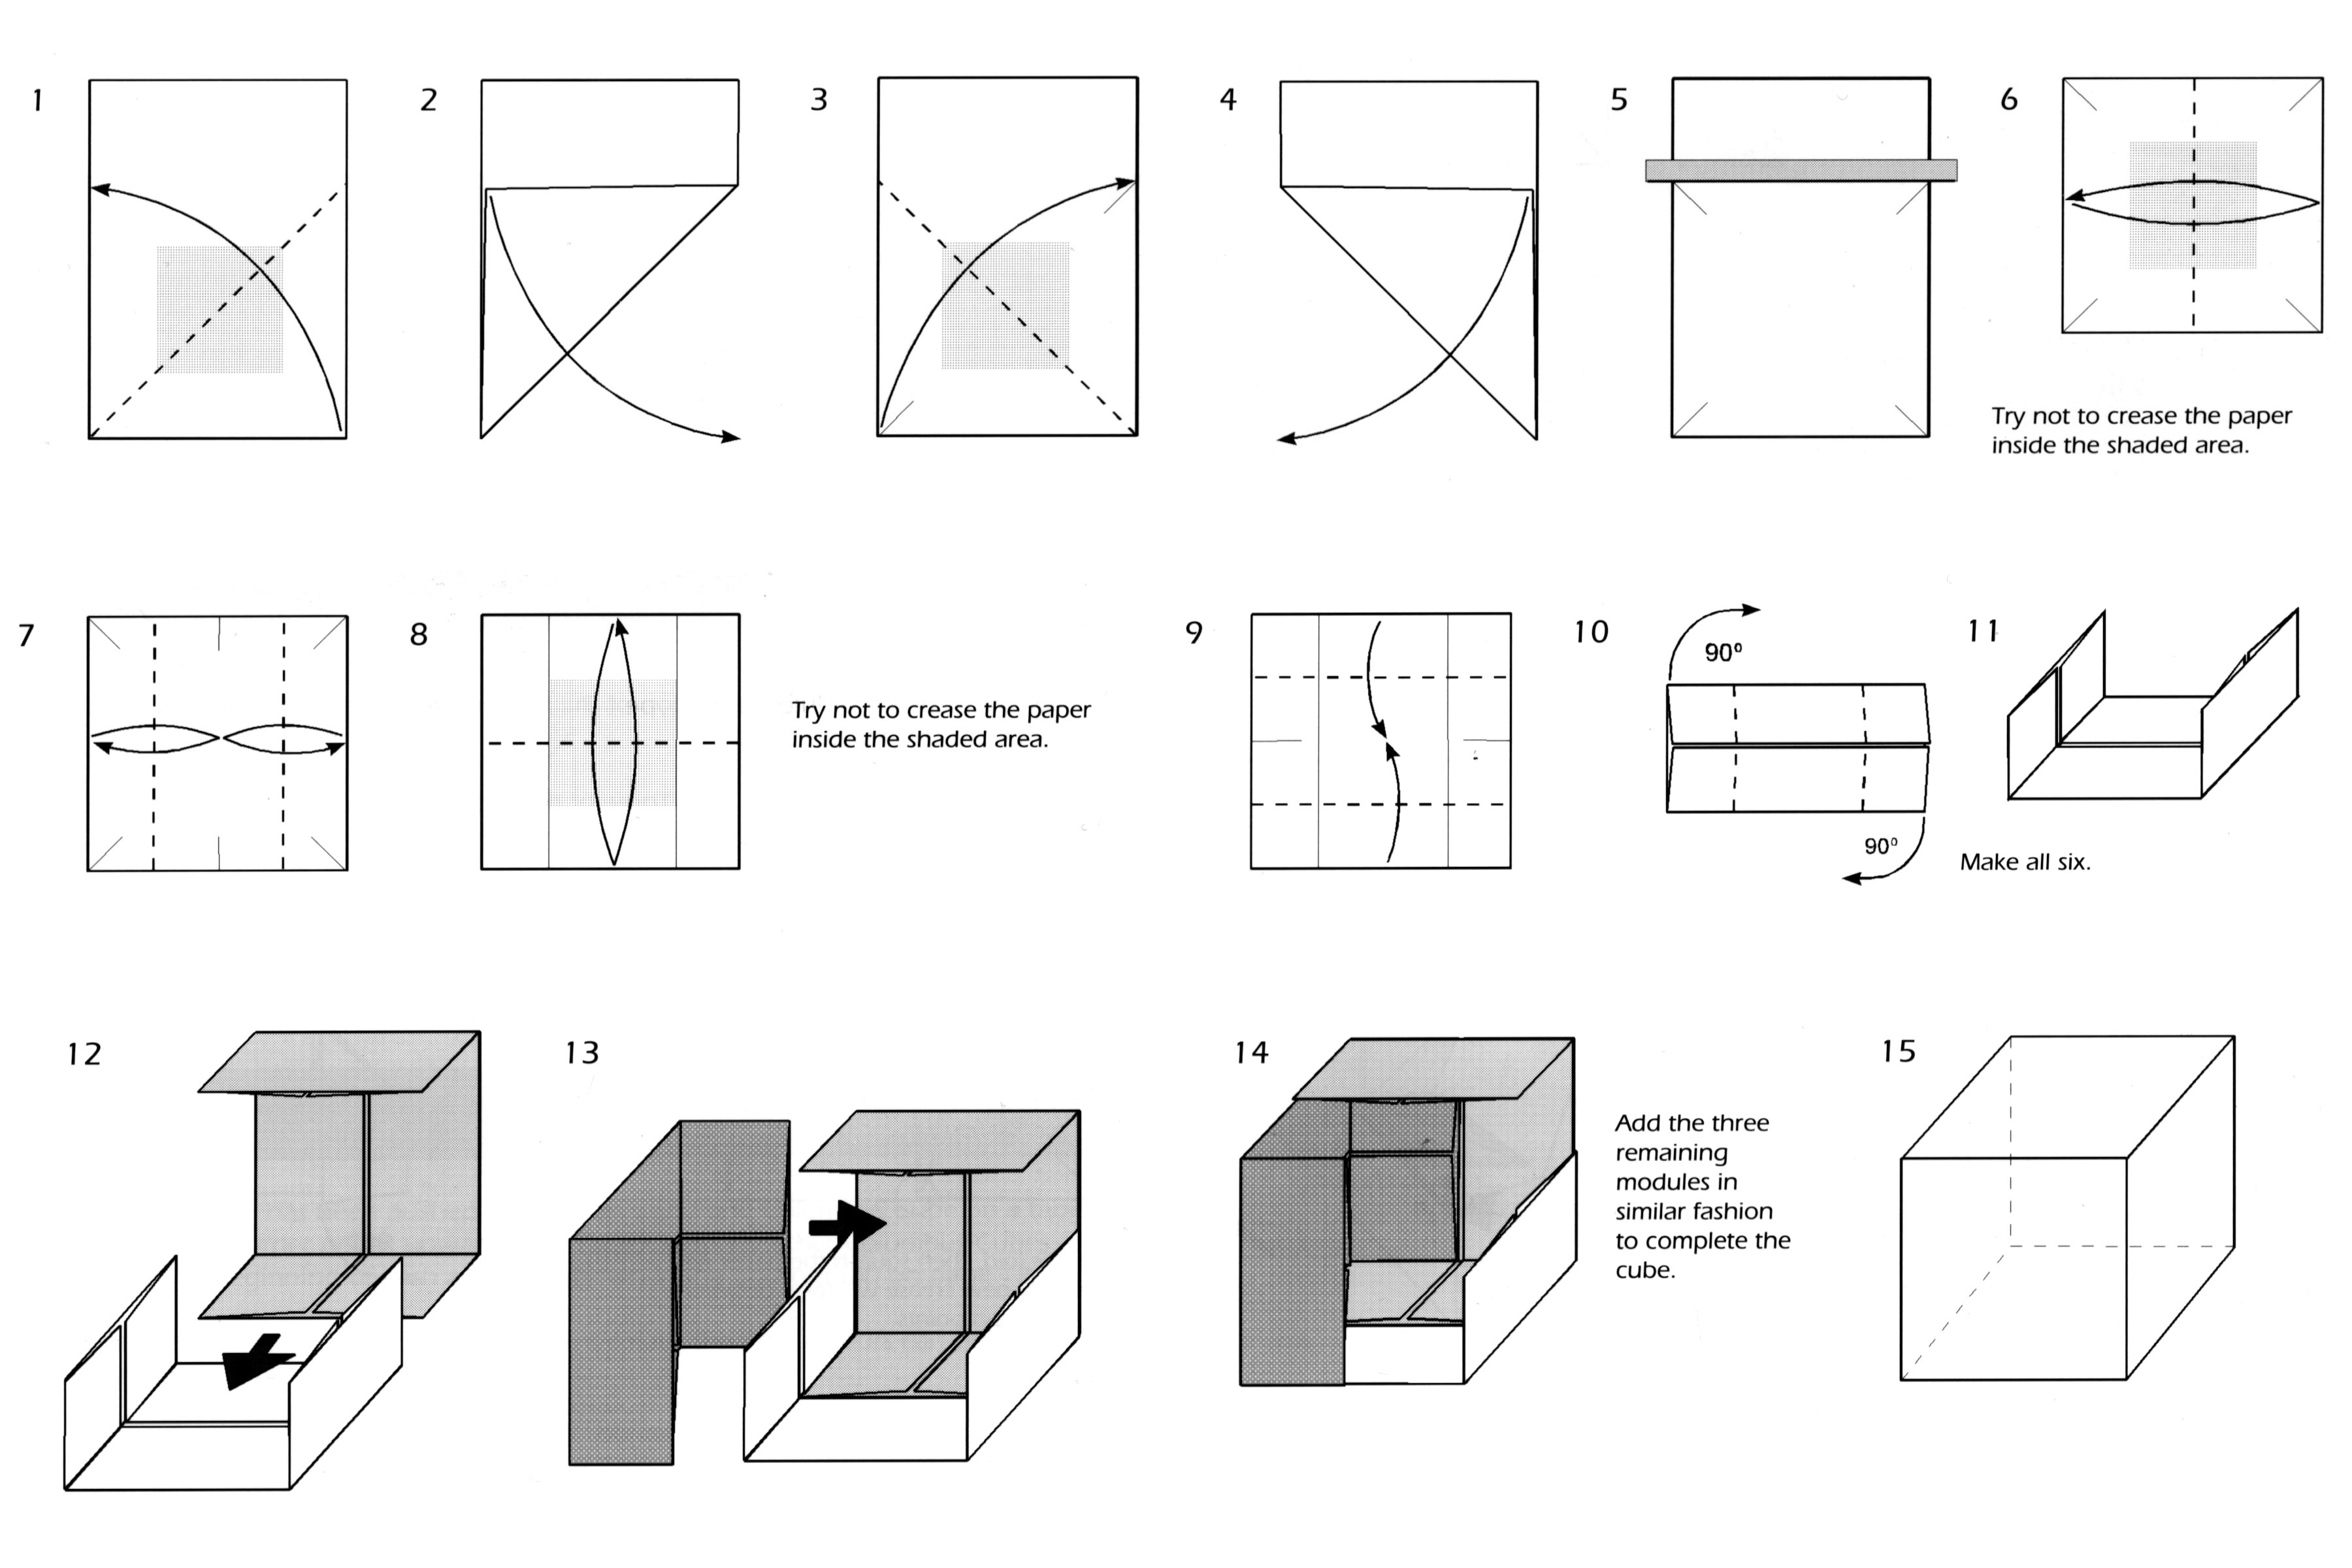 Easy modular origami cube folding instructions how to for Net making instructions